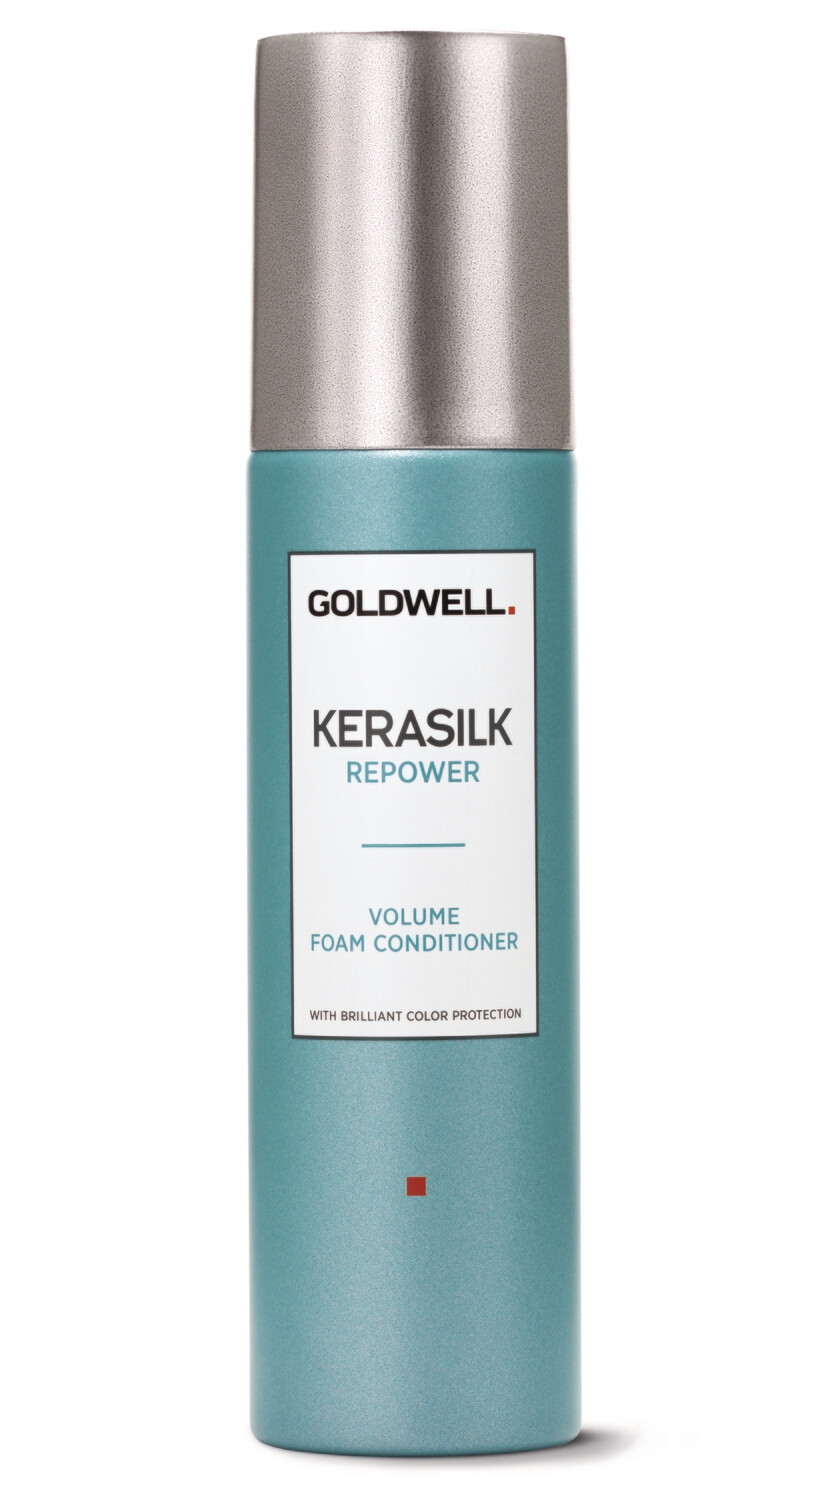 Goldwell Kerasilk Re Power Volume Foam Conditioner 150 ml